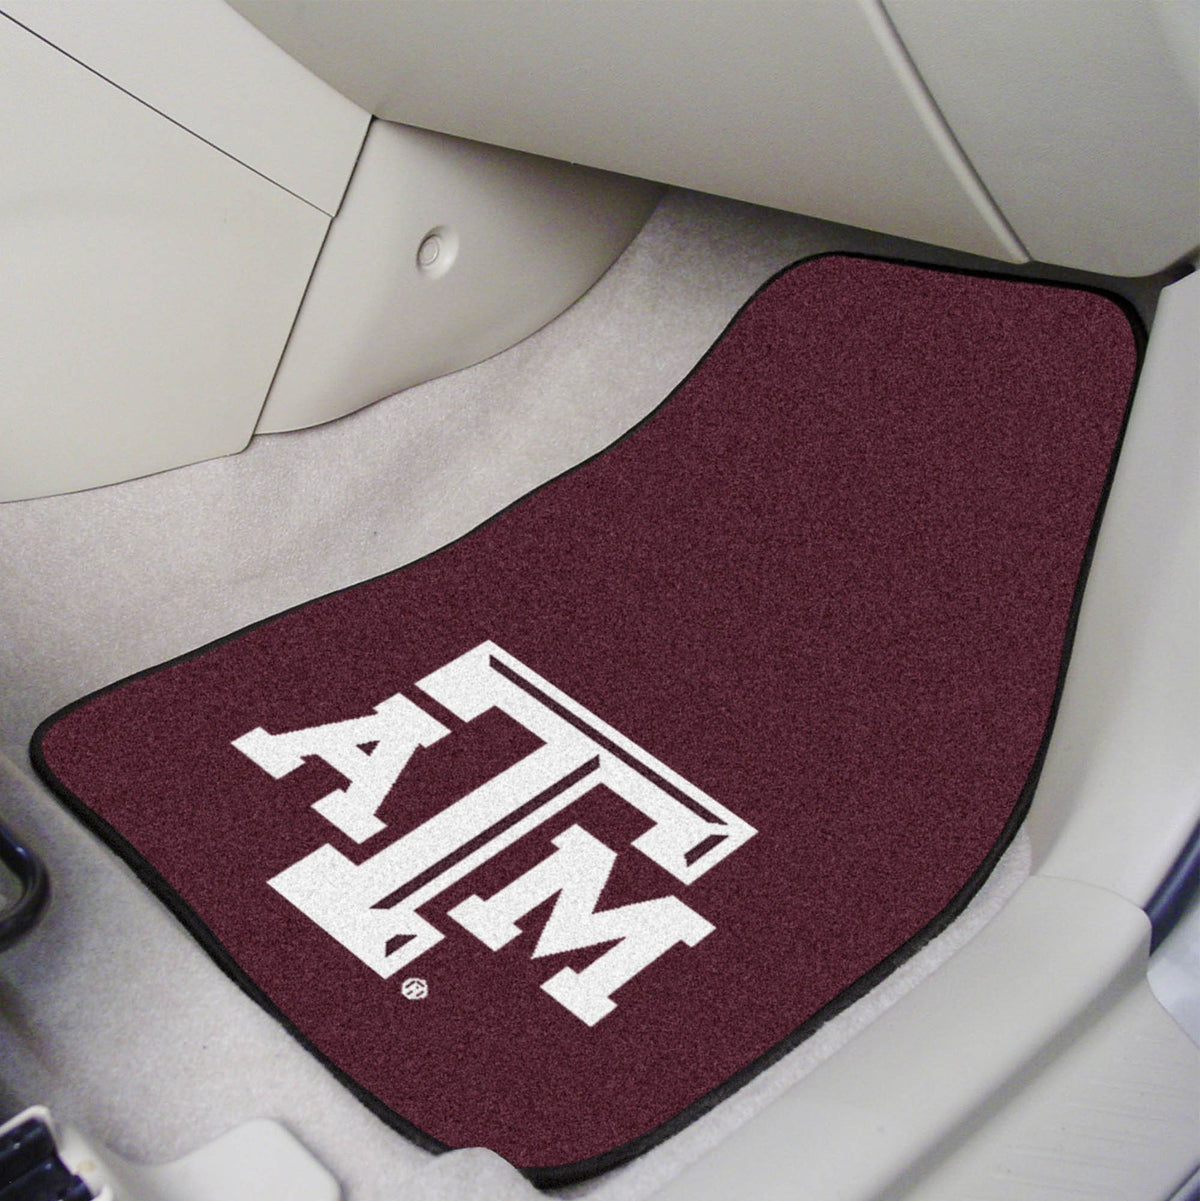 Collegiate - Carpet Car Mat, 2-Piece Set: T - Z Collegiate Car Mat, Front Car Mats, 2-pc Carpet Car Mat Set, Collegiate, Auto Fan Mats Texas A&M